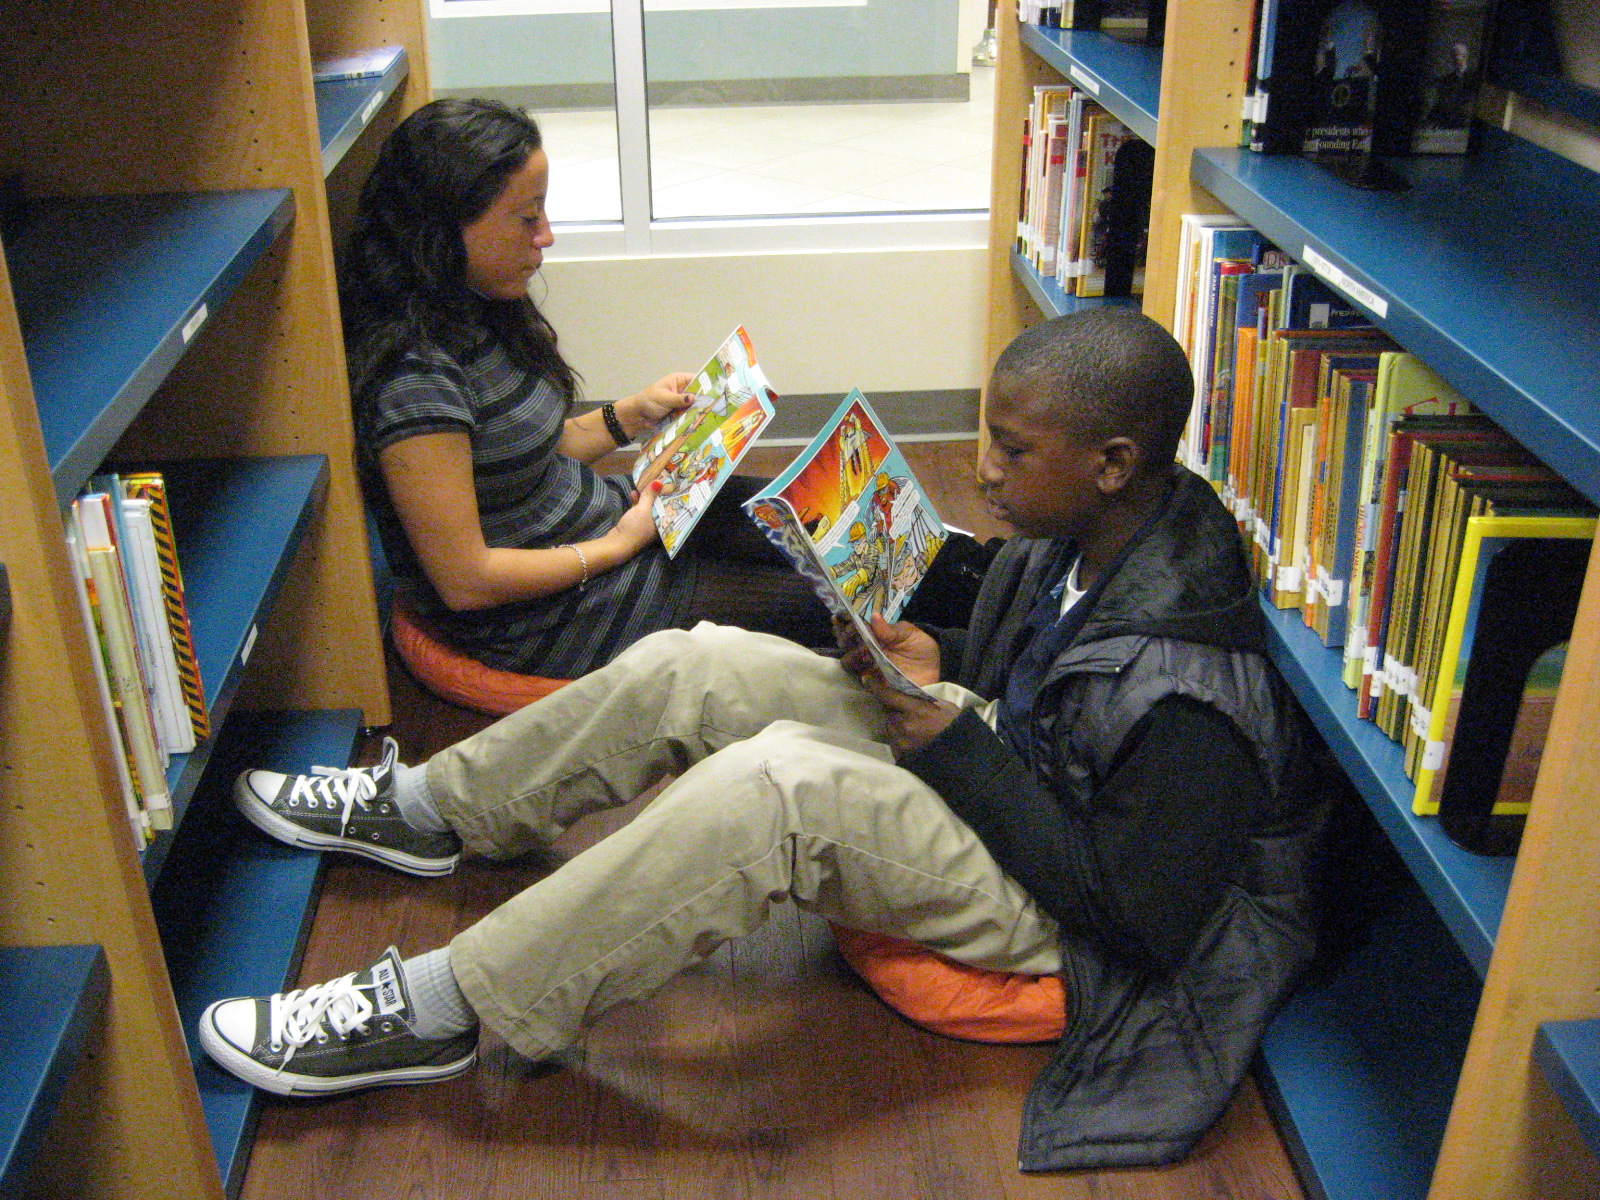 two students reading in the stacks of a library